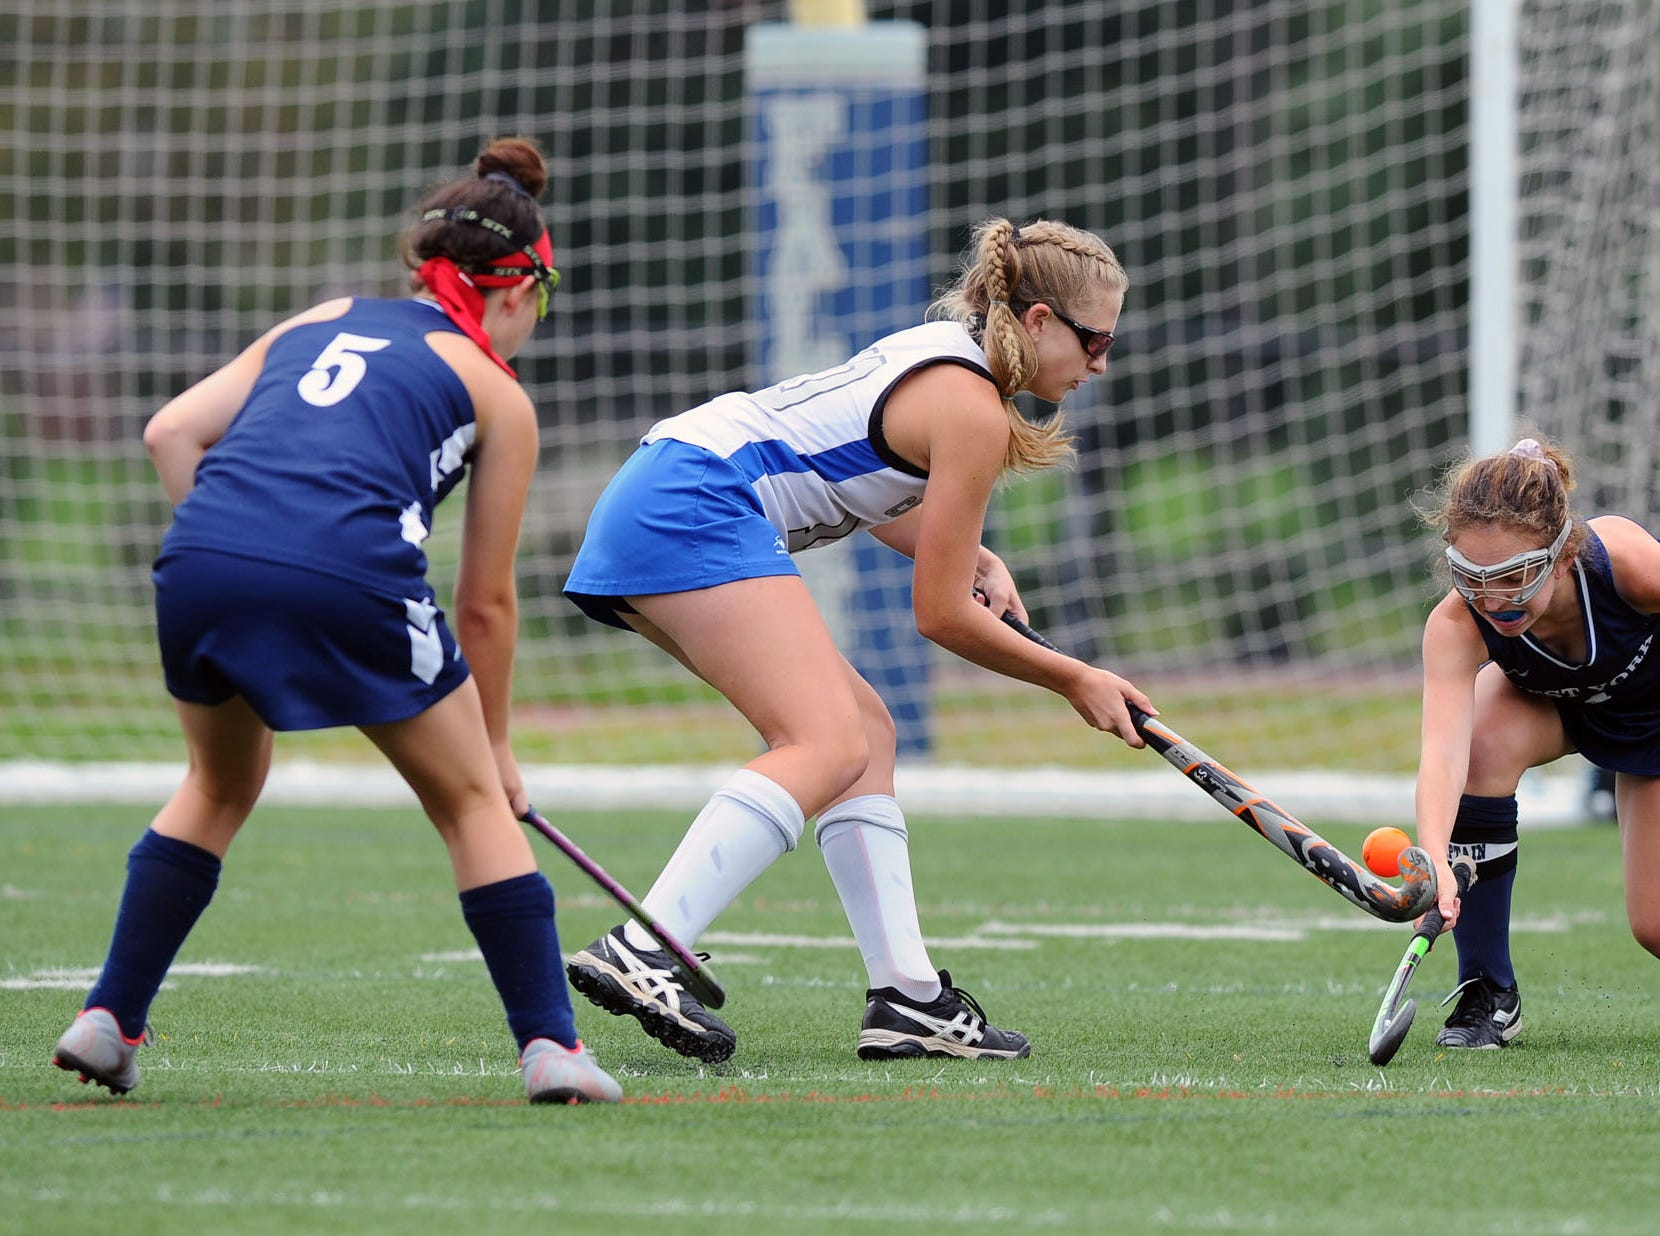 Cedar Crest's Hanna Lewis(10) tries to get control of the ball between West York's Nikki Jumba (5) and Maggie Spadafora (4) during play in the finals of the Falcon Fall Classic at Cedar Crest High School Saturday, September 22, 2018.